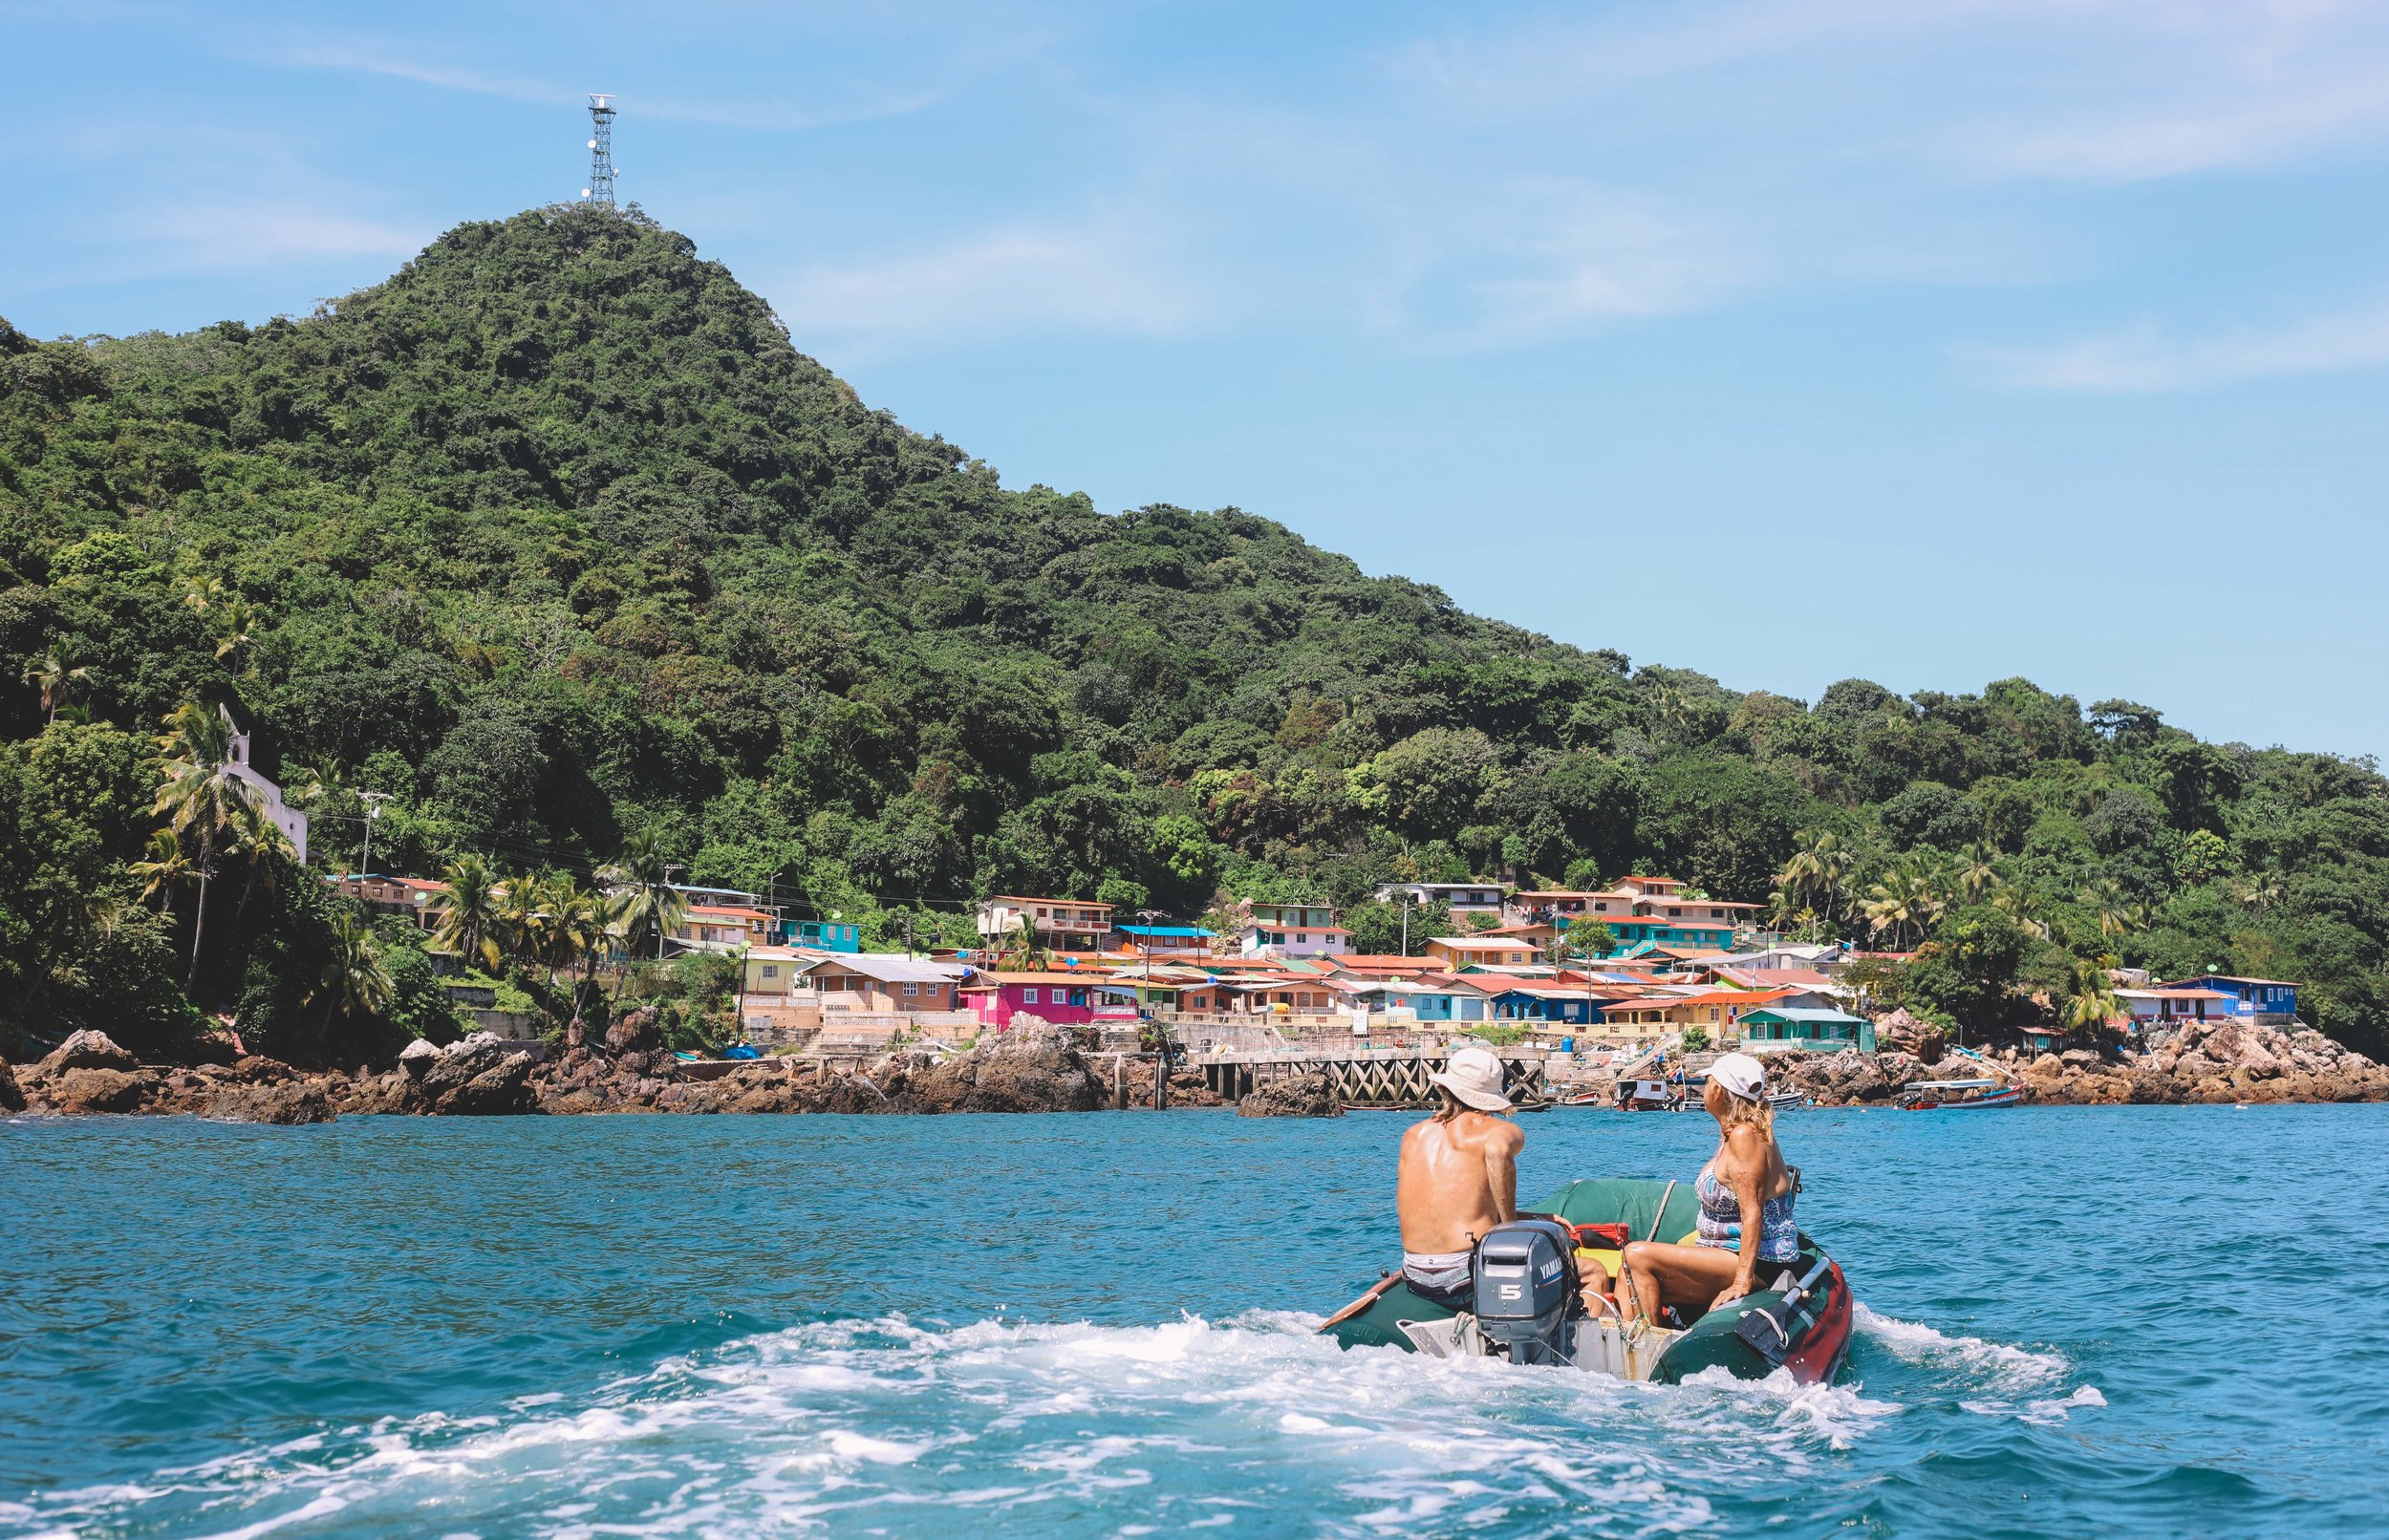 These islands are a perfect stop for boats traveling from Punta Mala or Marina Vista Mar to Panama City or the Las Perlas Islands.